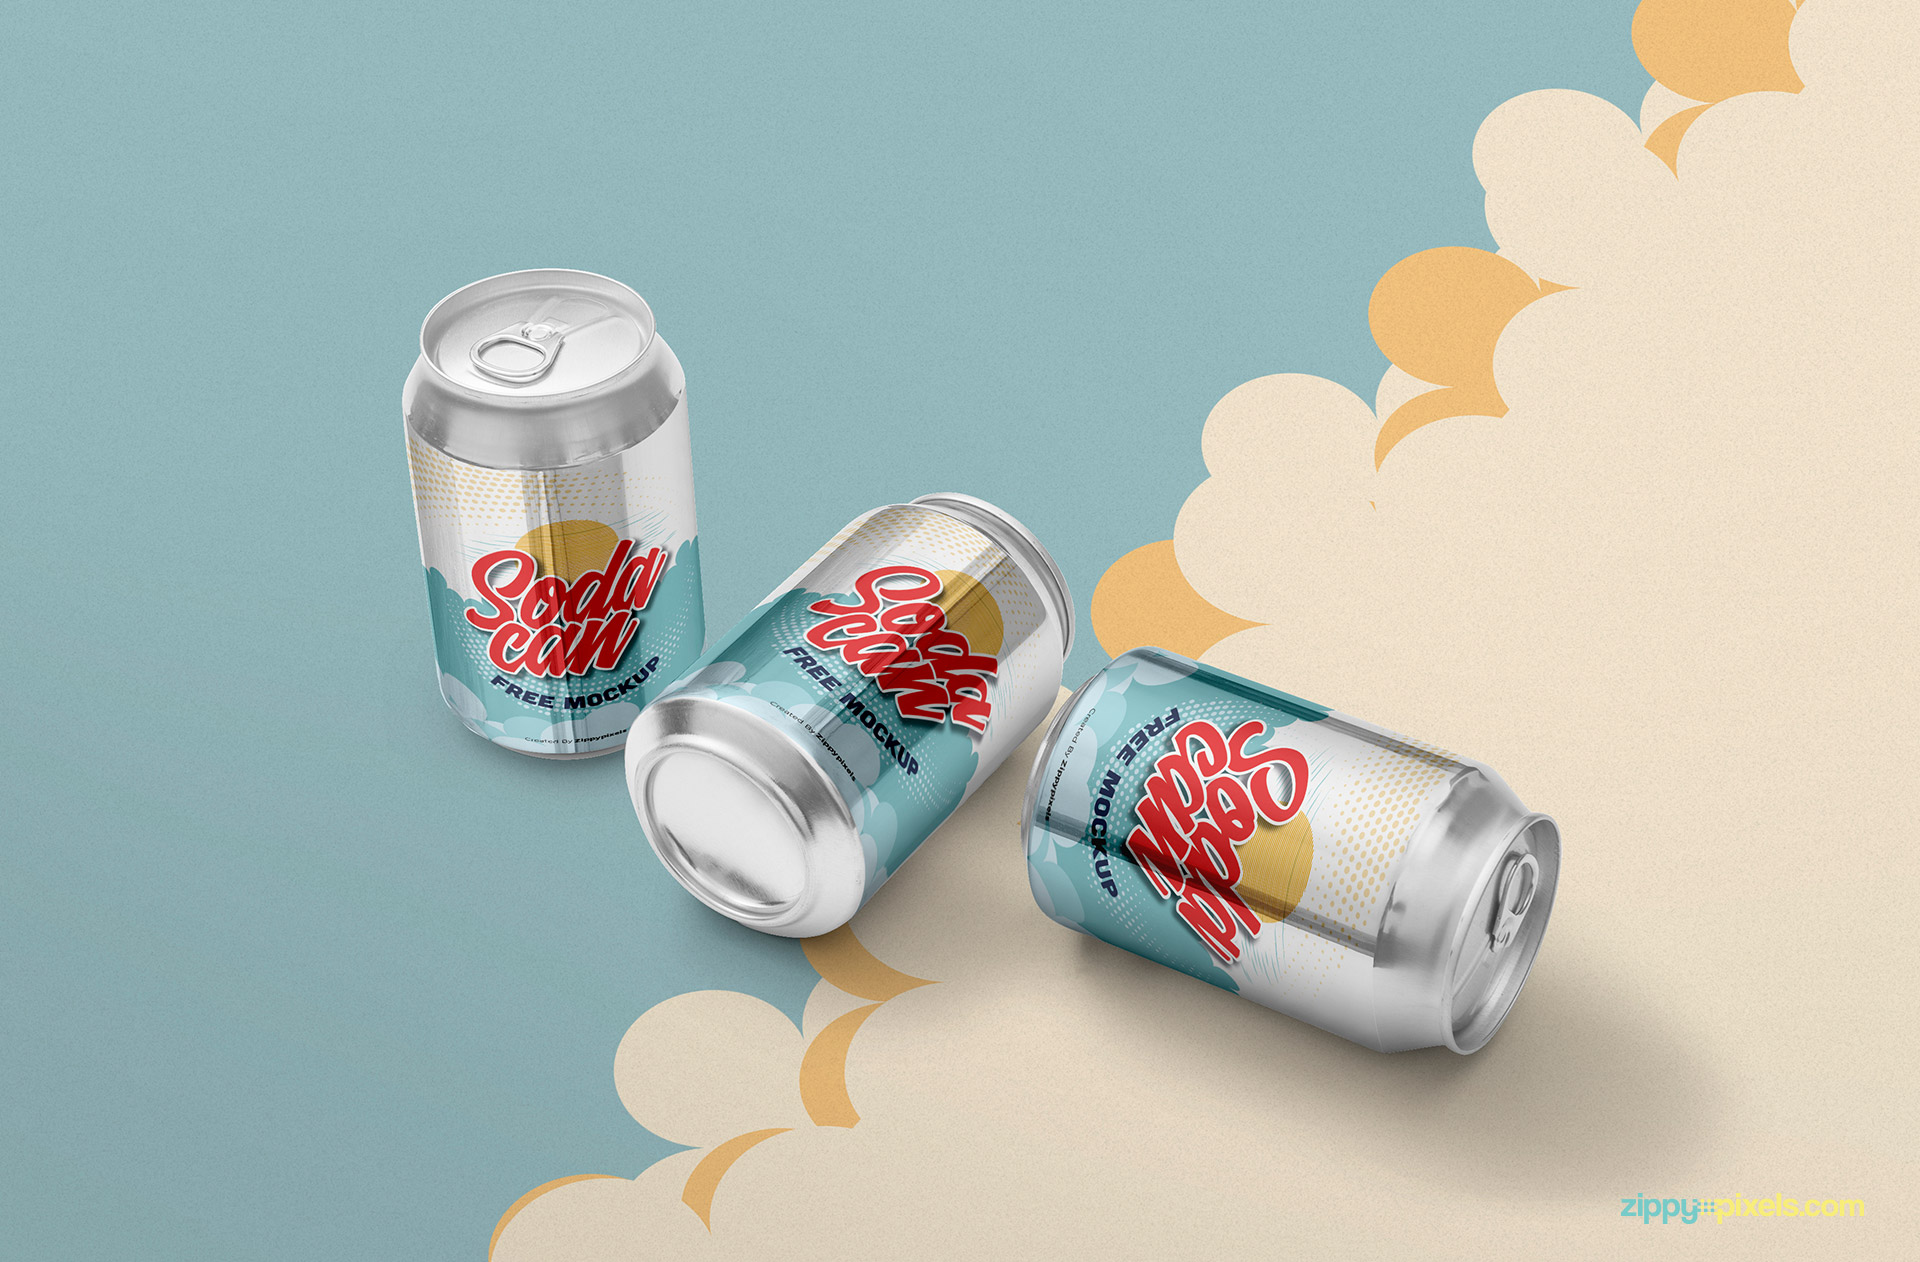 Soft drink can mockup free PSD.